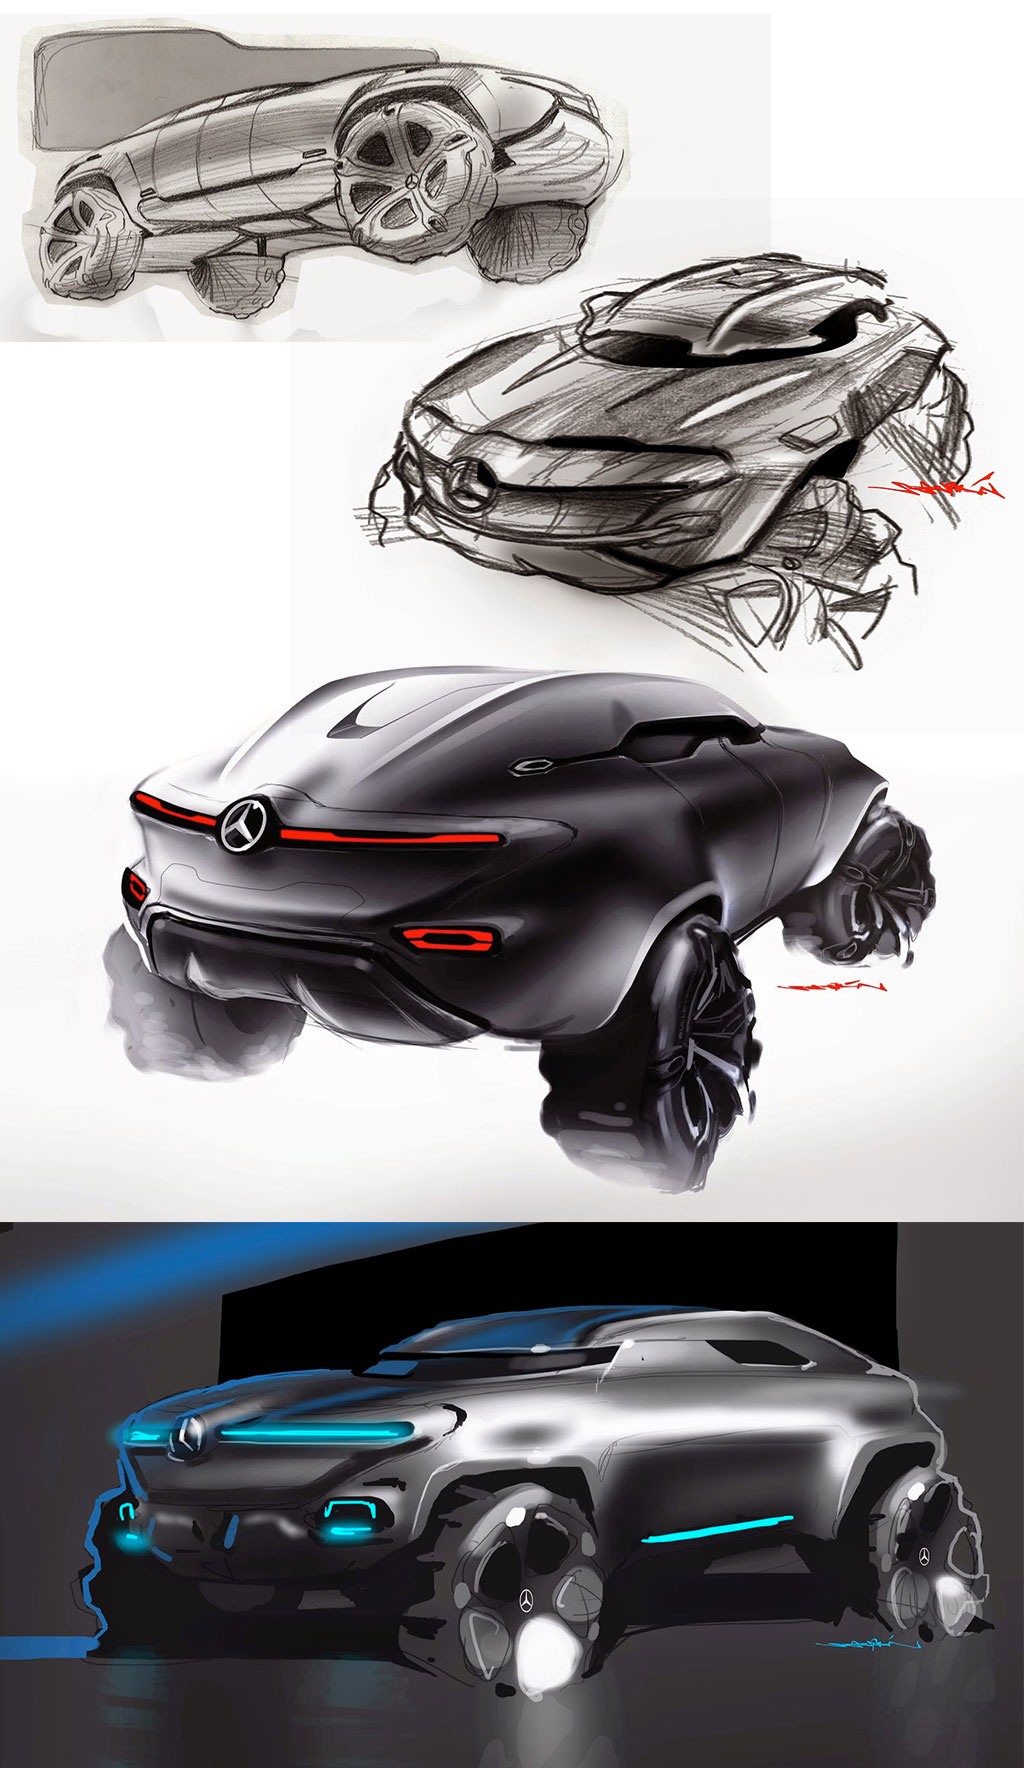 Mercedes Benz Vindicator Concept Design Sketches By Sebestyen Marcell on Volvo S60 Sketch